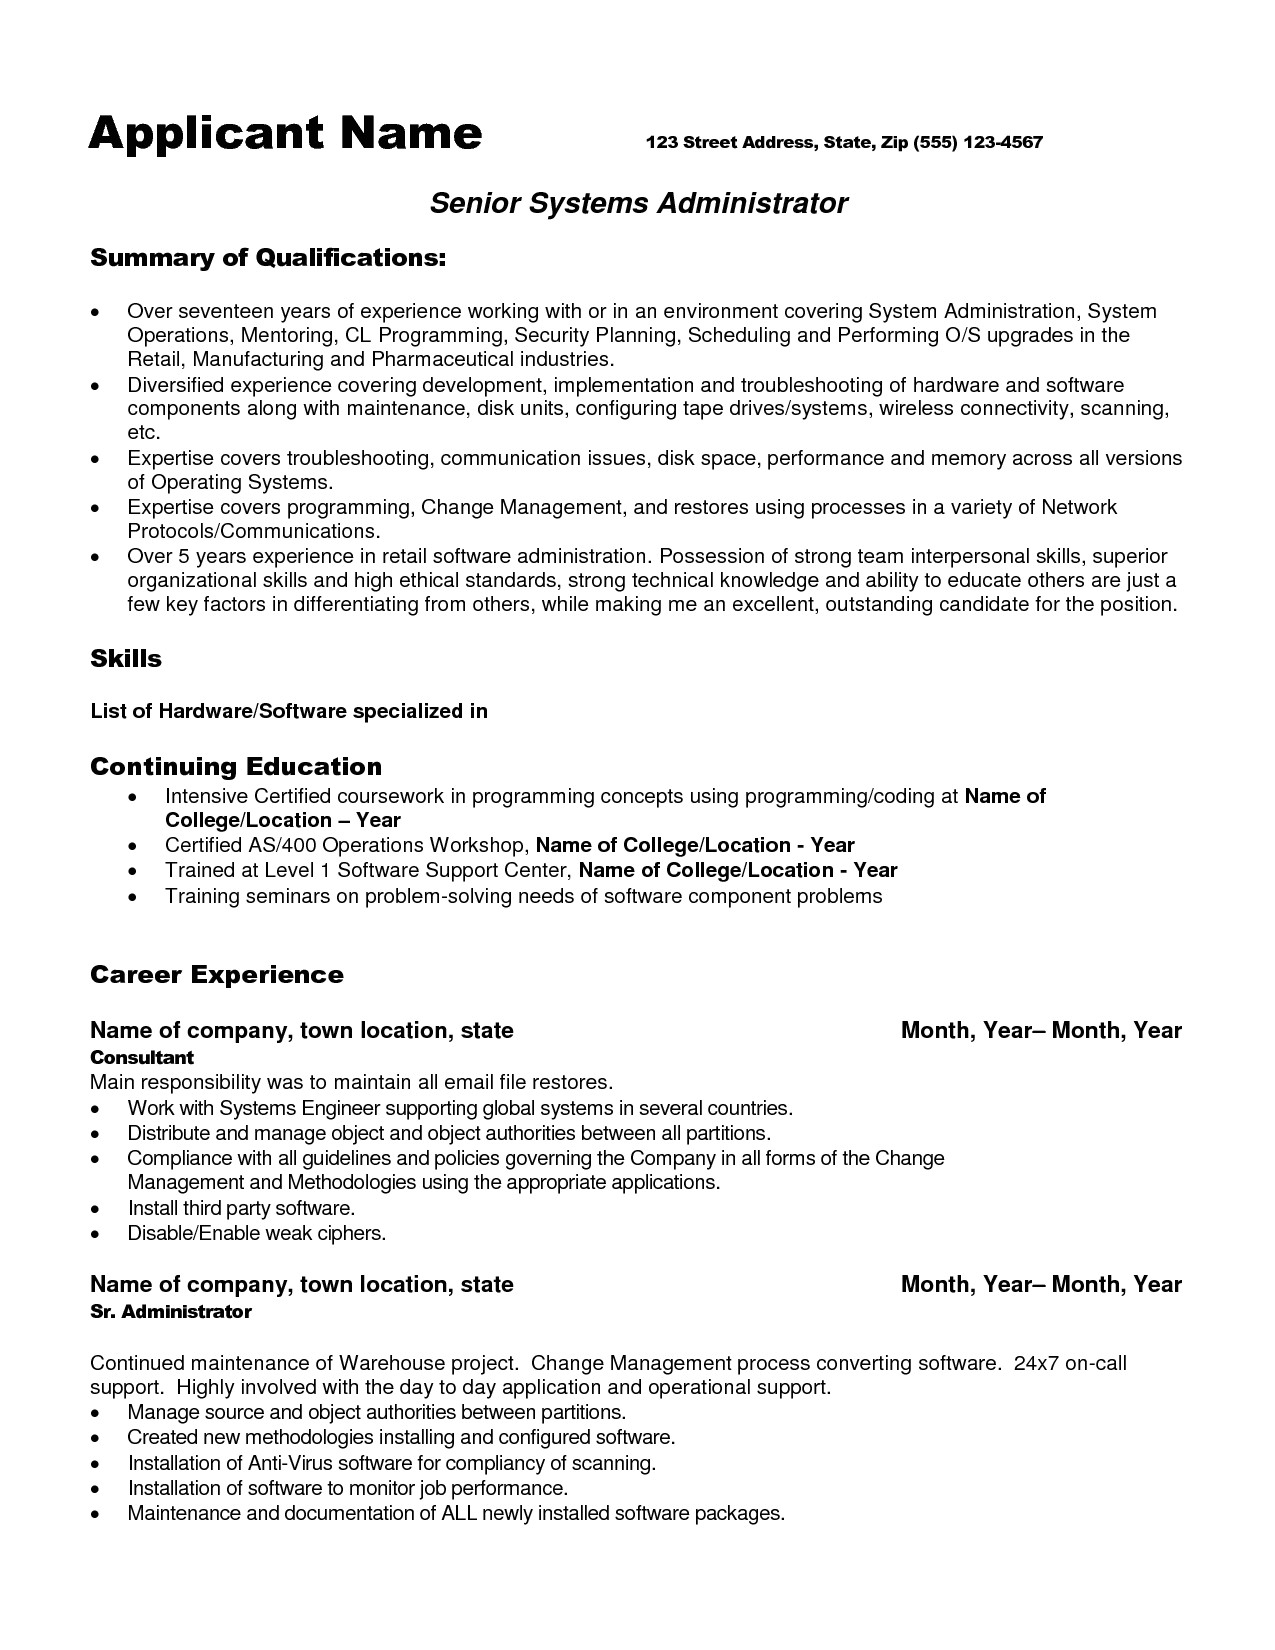 Sample Resume for Linux System Administrator Fresher System Administrator Resume format for Fresher Resume Ideas